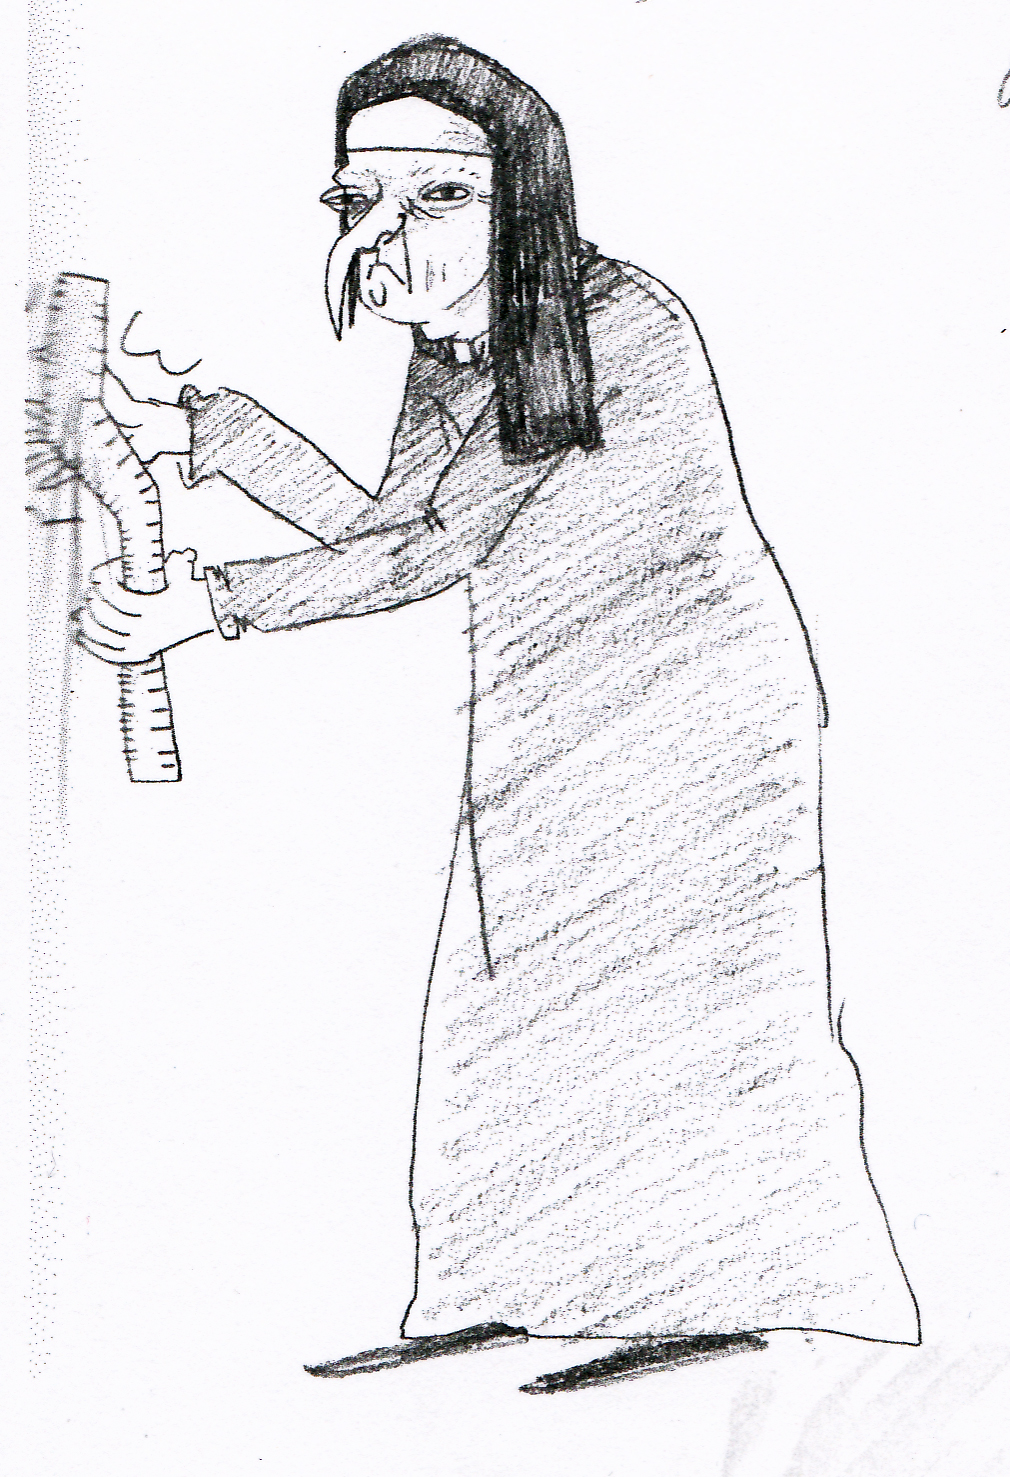 The Illustrated Book Image Collective: Sister (character)